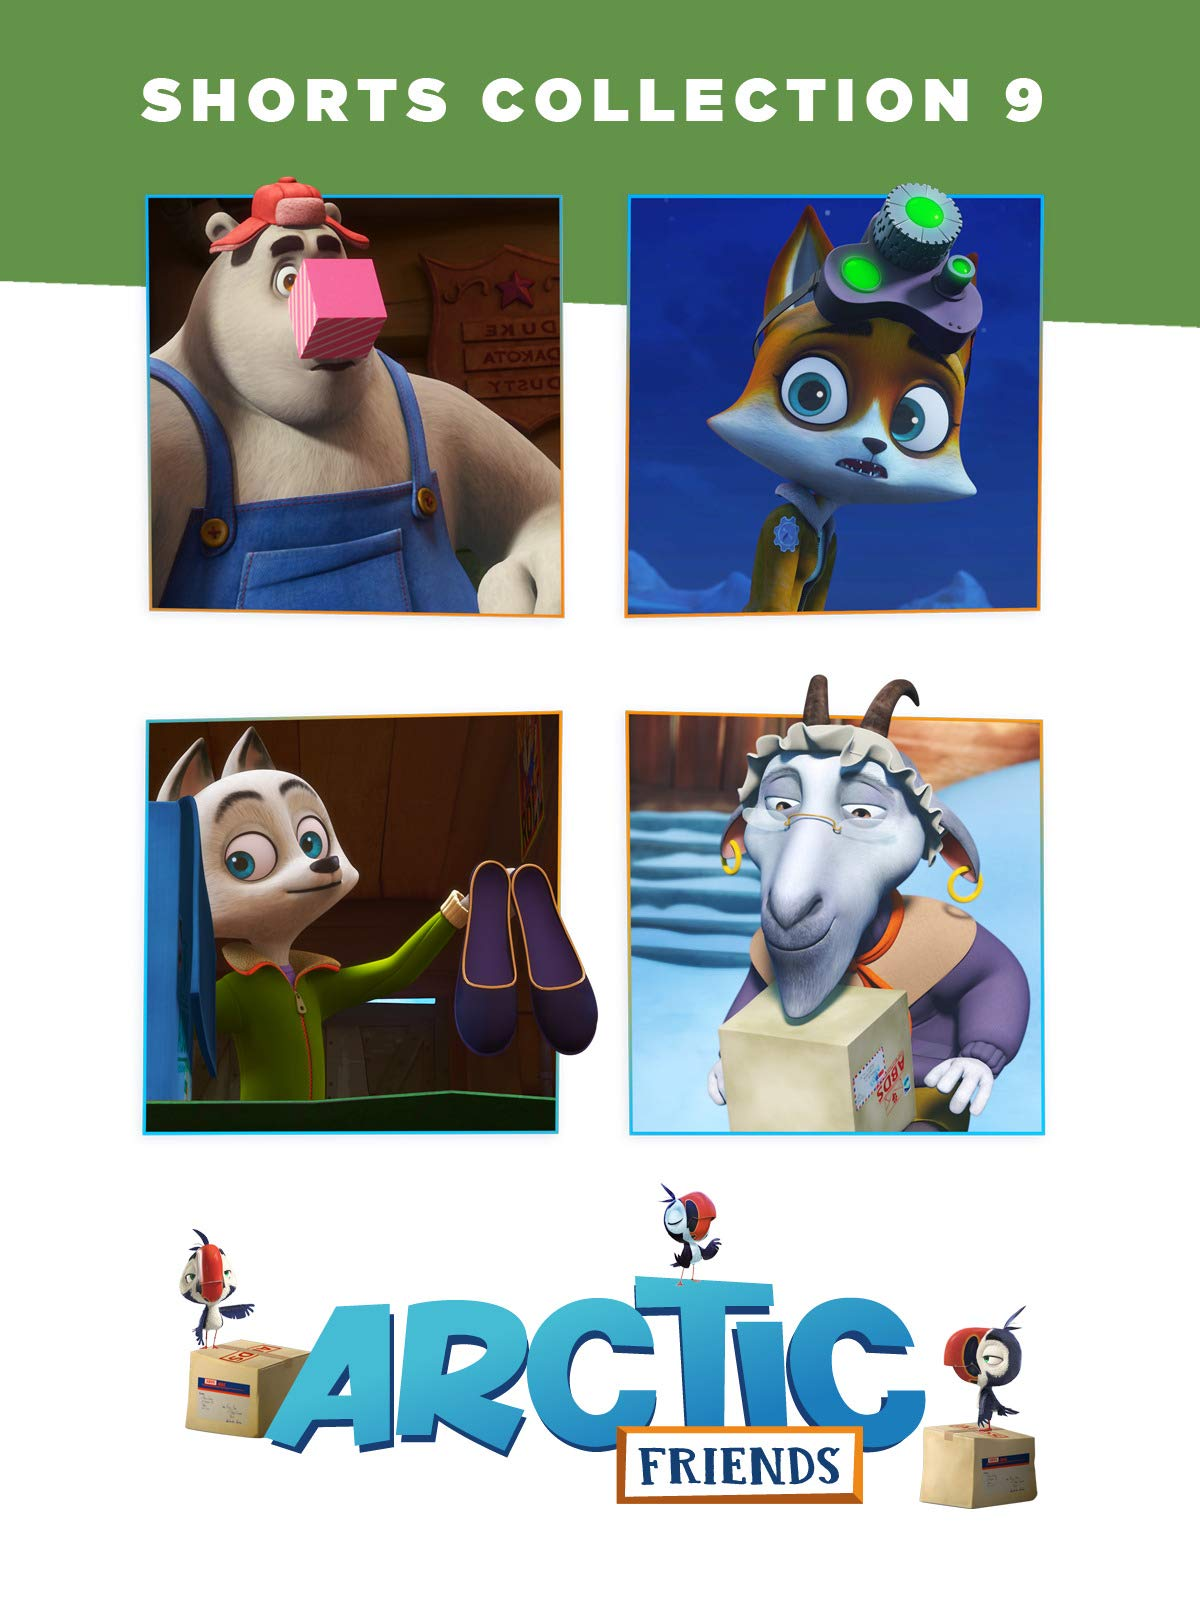 Arctic Friends: Shorts Collection 9